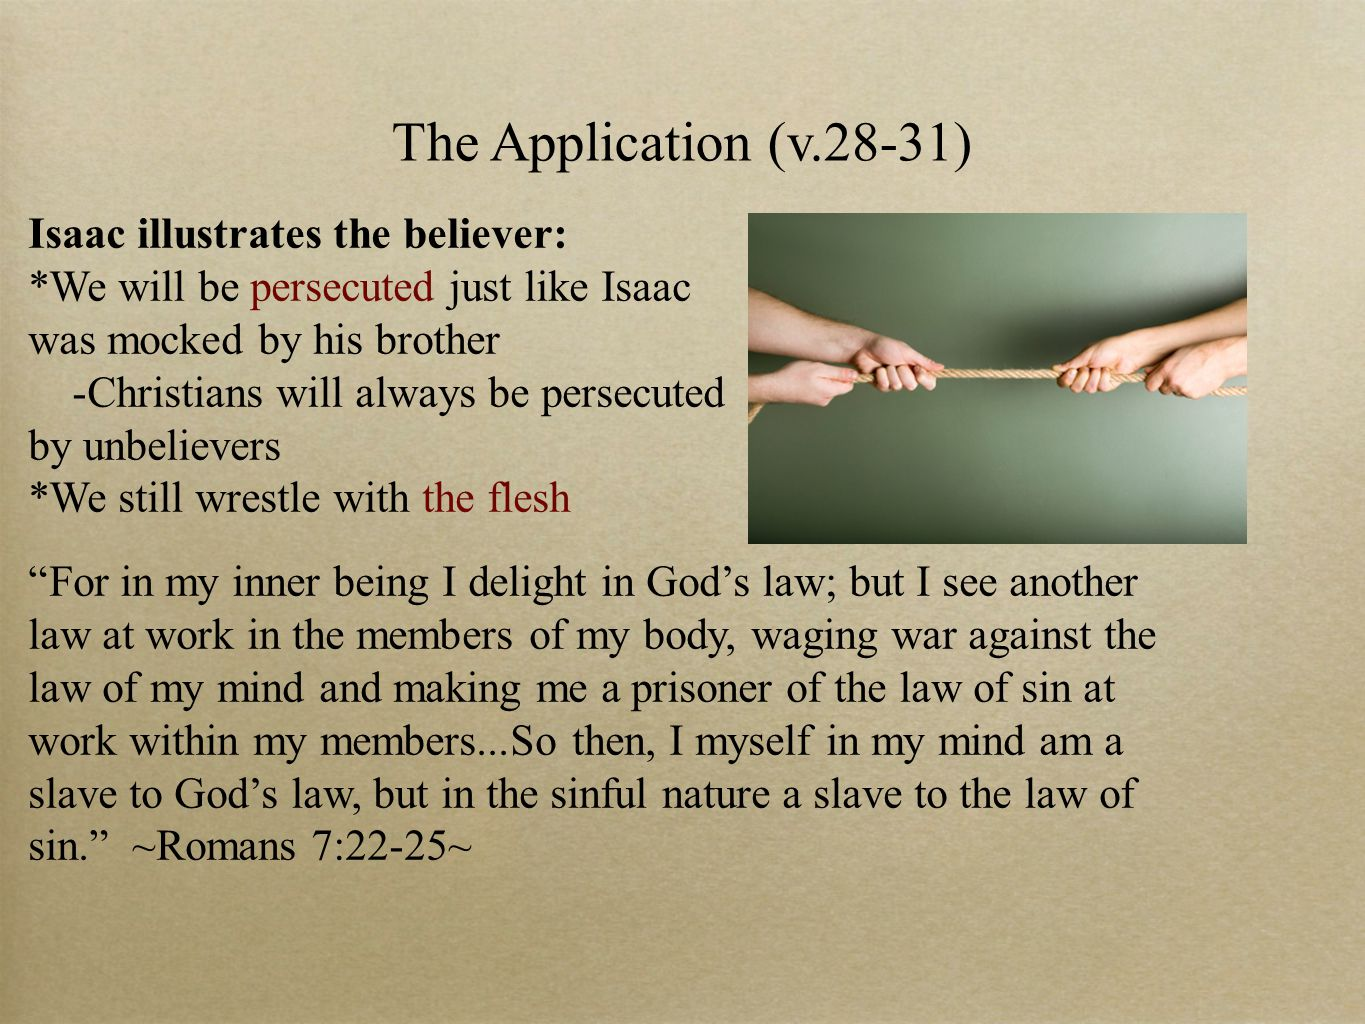 The Application (v.28-31) Isaac illustrates the believer: *We will be persecuted just like Isaac was mocked by his brother -Christians will always be persecuted by unbelievers *We still wrestle with the flesh For in my inner being I delight in God's law; but I see another law at work in the members of my body, waging war against the law of my mind and making me a prisoner of the law of sin at work within my members...So then, I myself in my mind am a slave to God's law, but in the sinful nature a slave to the law of sin. ~Romans 7:22-25~